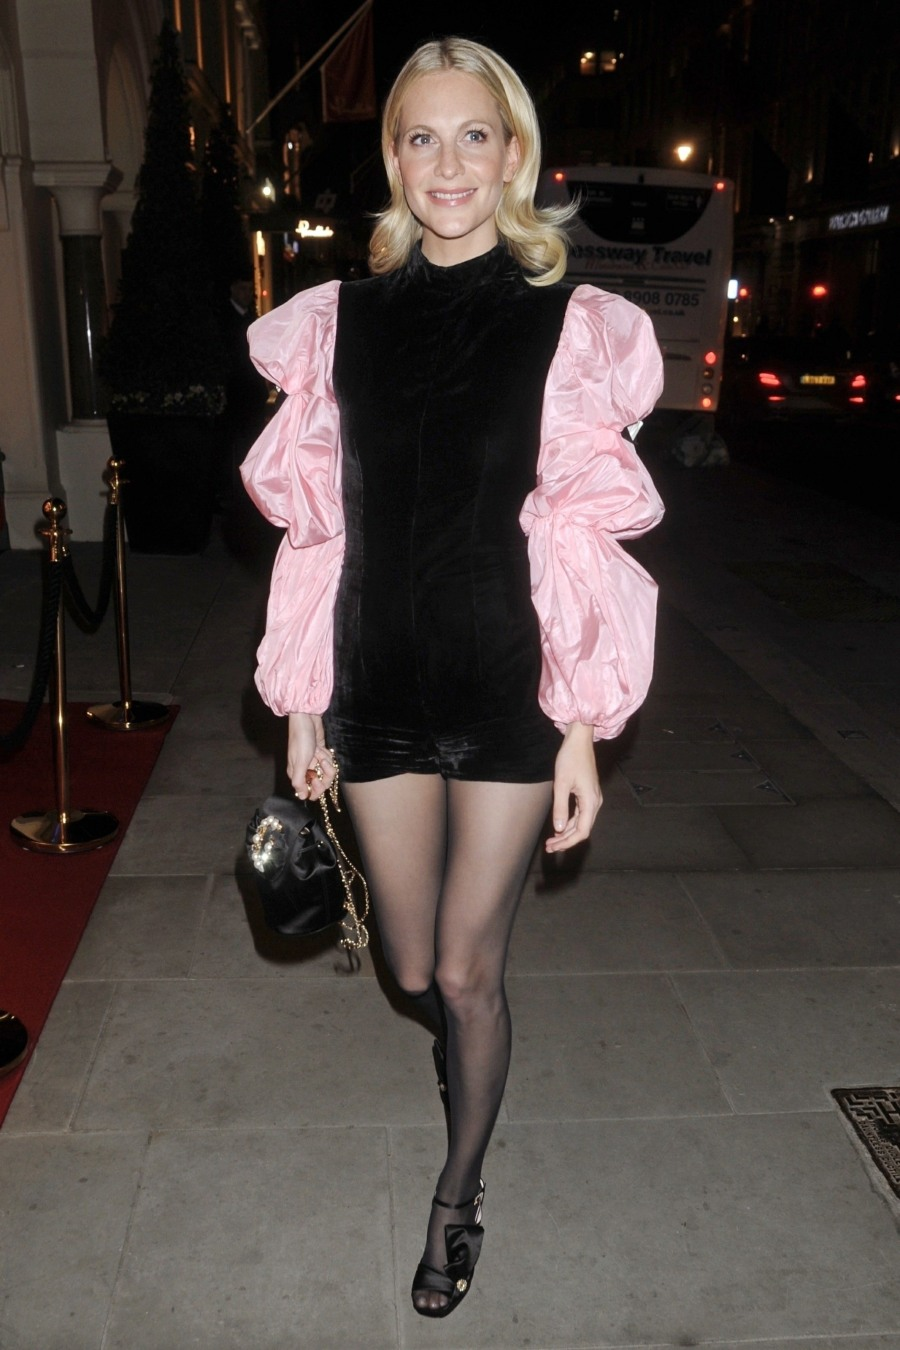 Poppy Delevingne attends the Roger Vivier New Store Opening Party in London